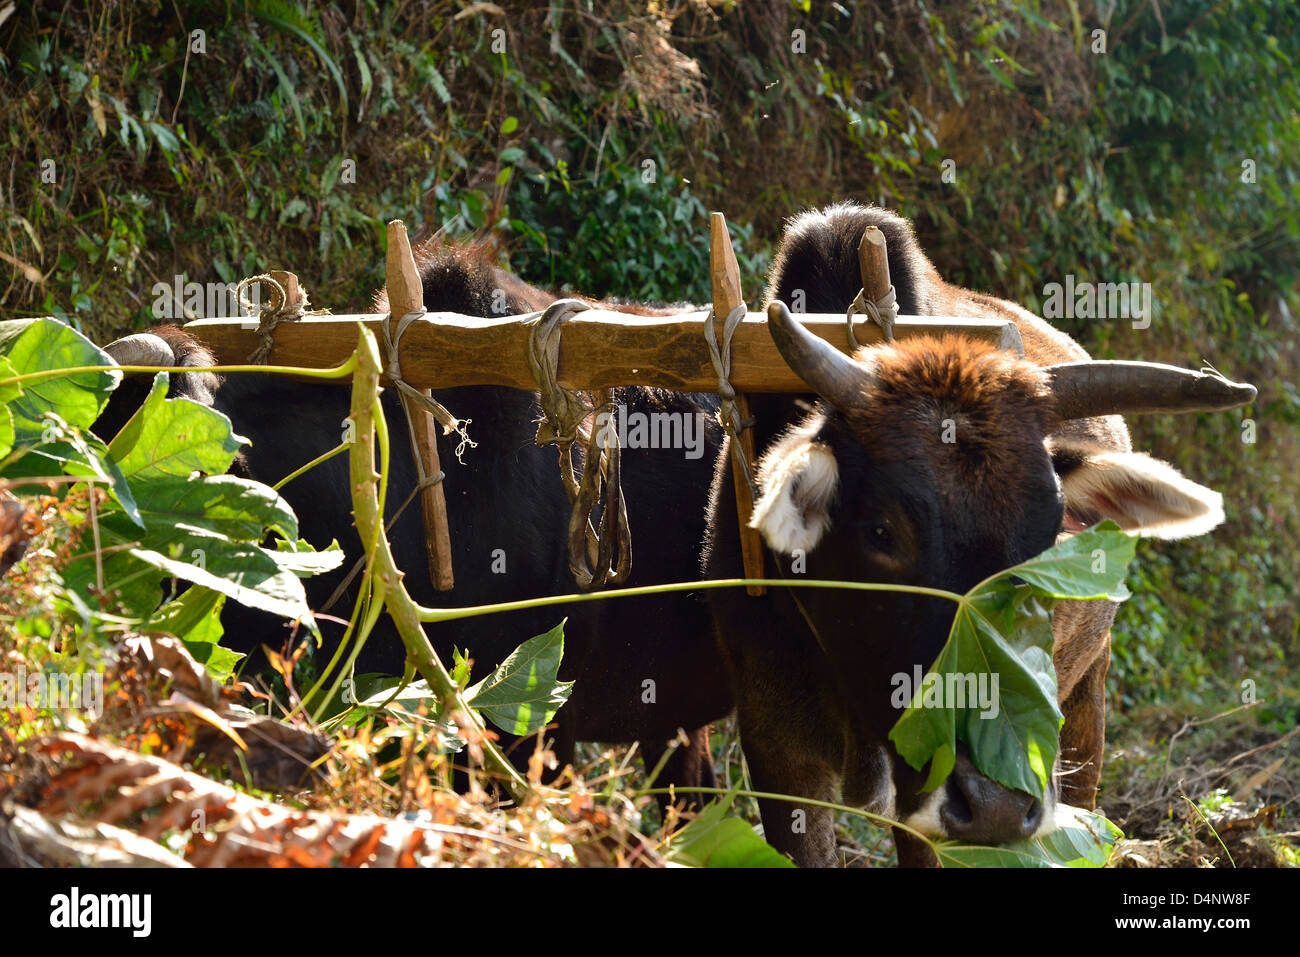 Hand made, traditional Nepalese style yoke, worn by the Oxen for ploughing. - Stock Image